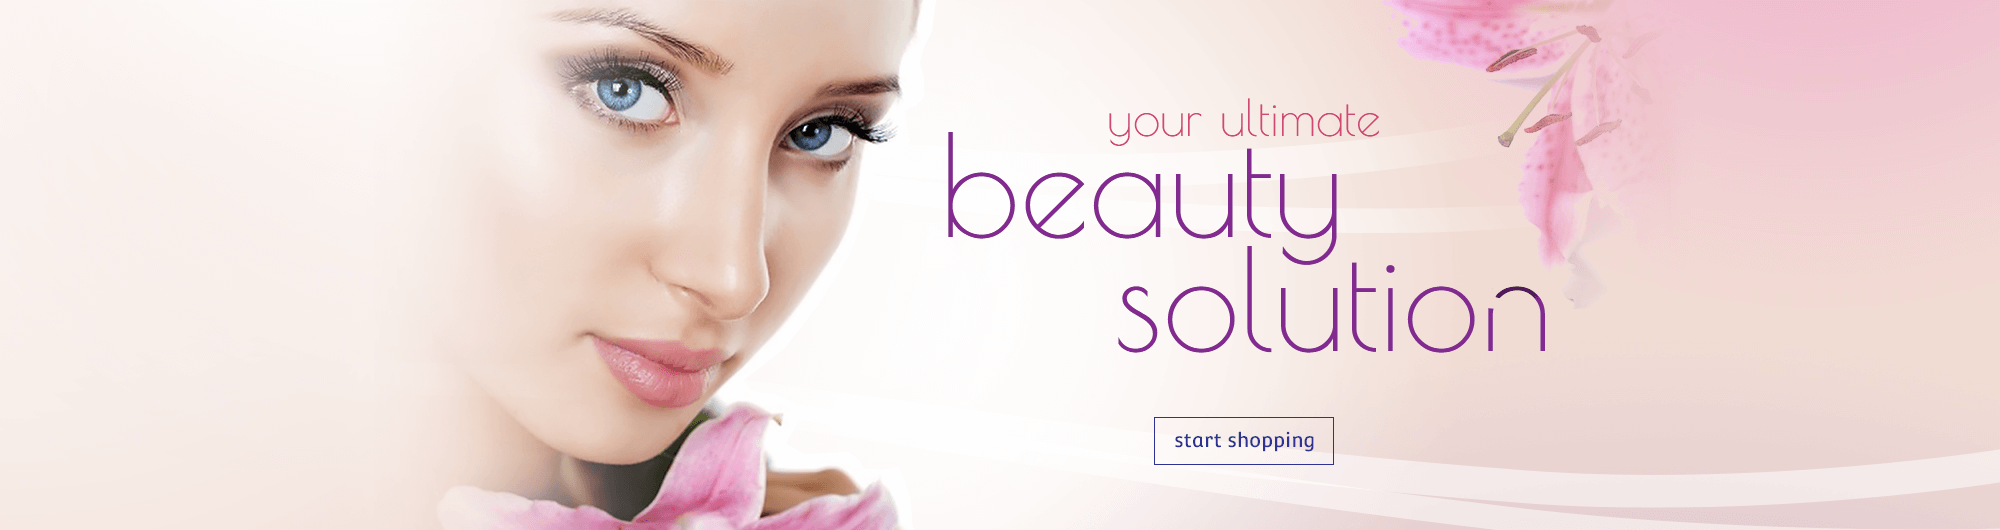 your ultimate - beauty solution - start shopping